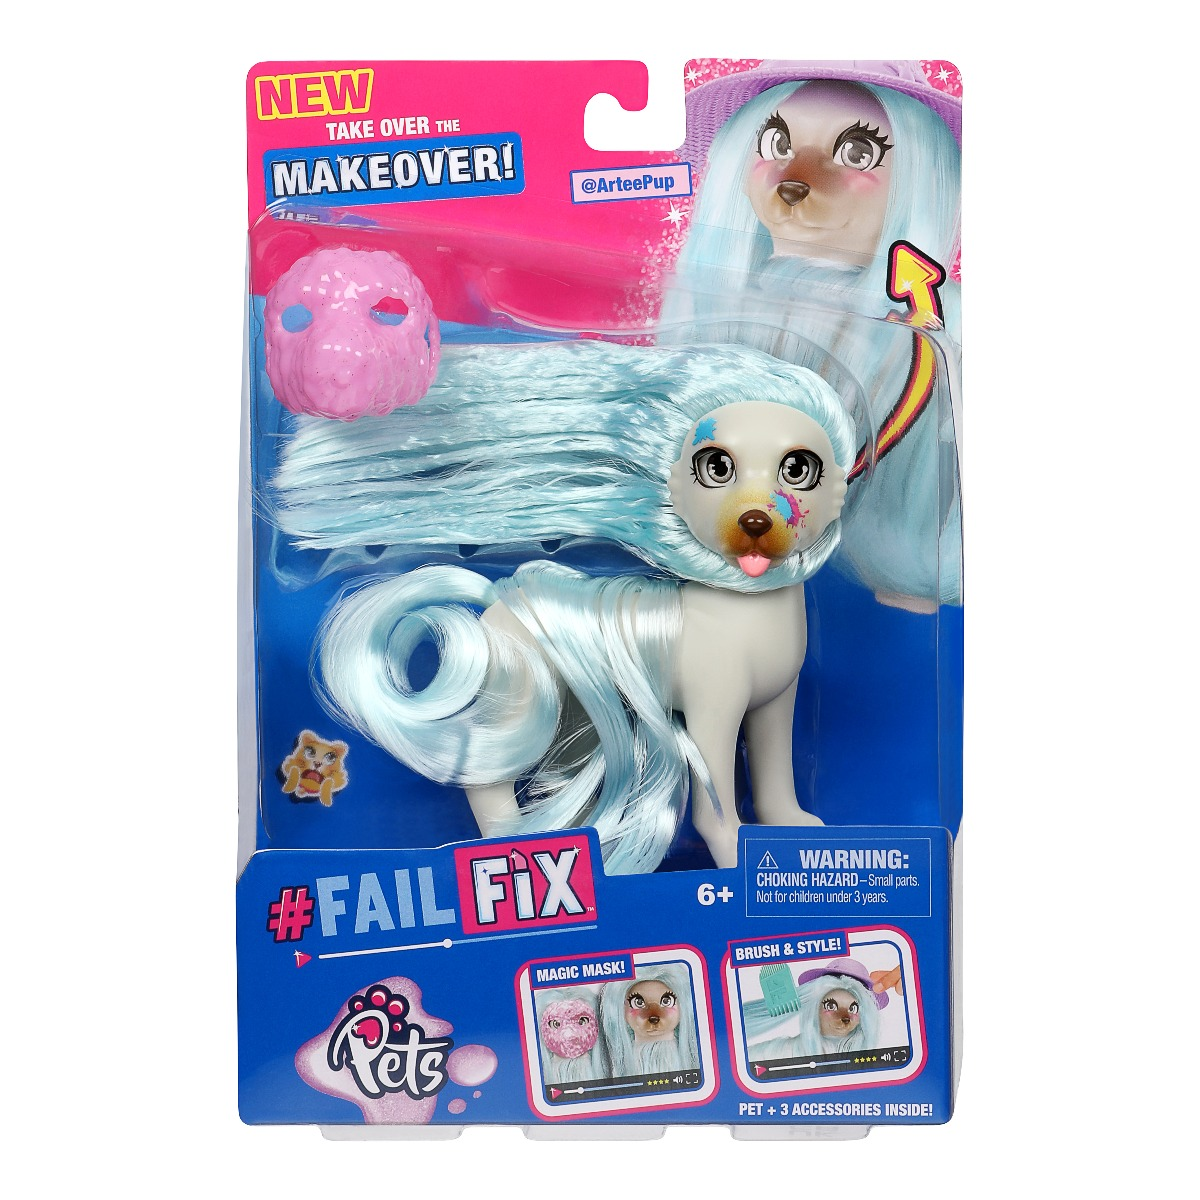 Papusa Fail Fix Makeover Pets S2, ArteePup